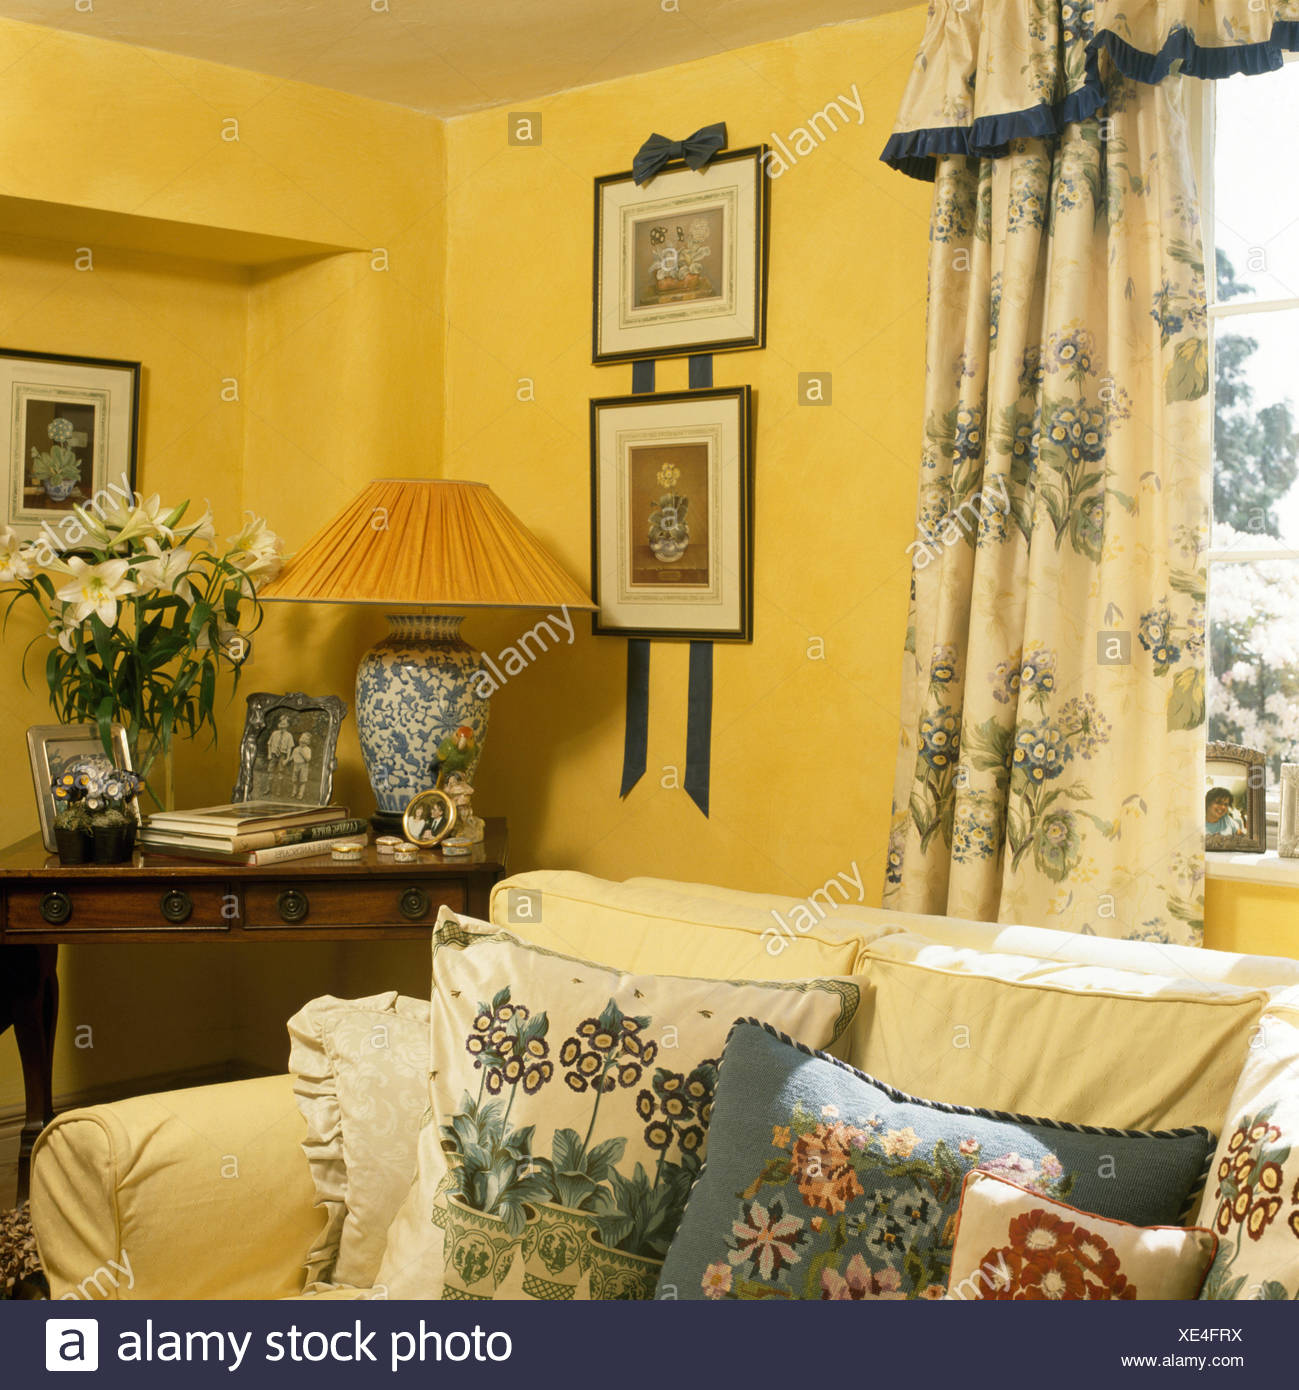 Primula Auricula themed curtains and cushions in a yellow nineties ...